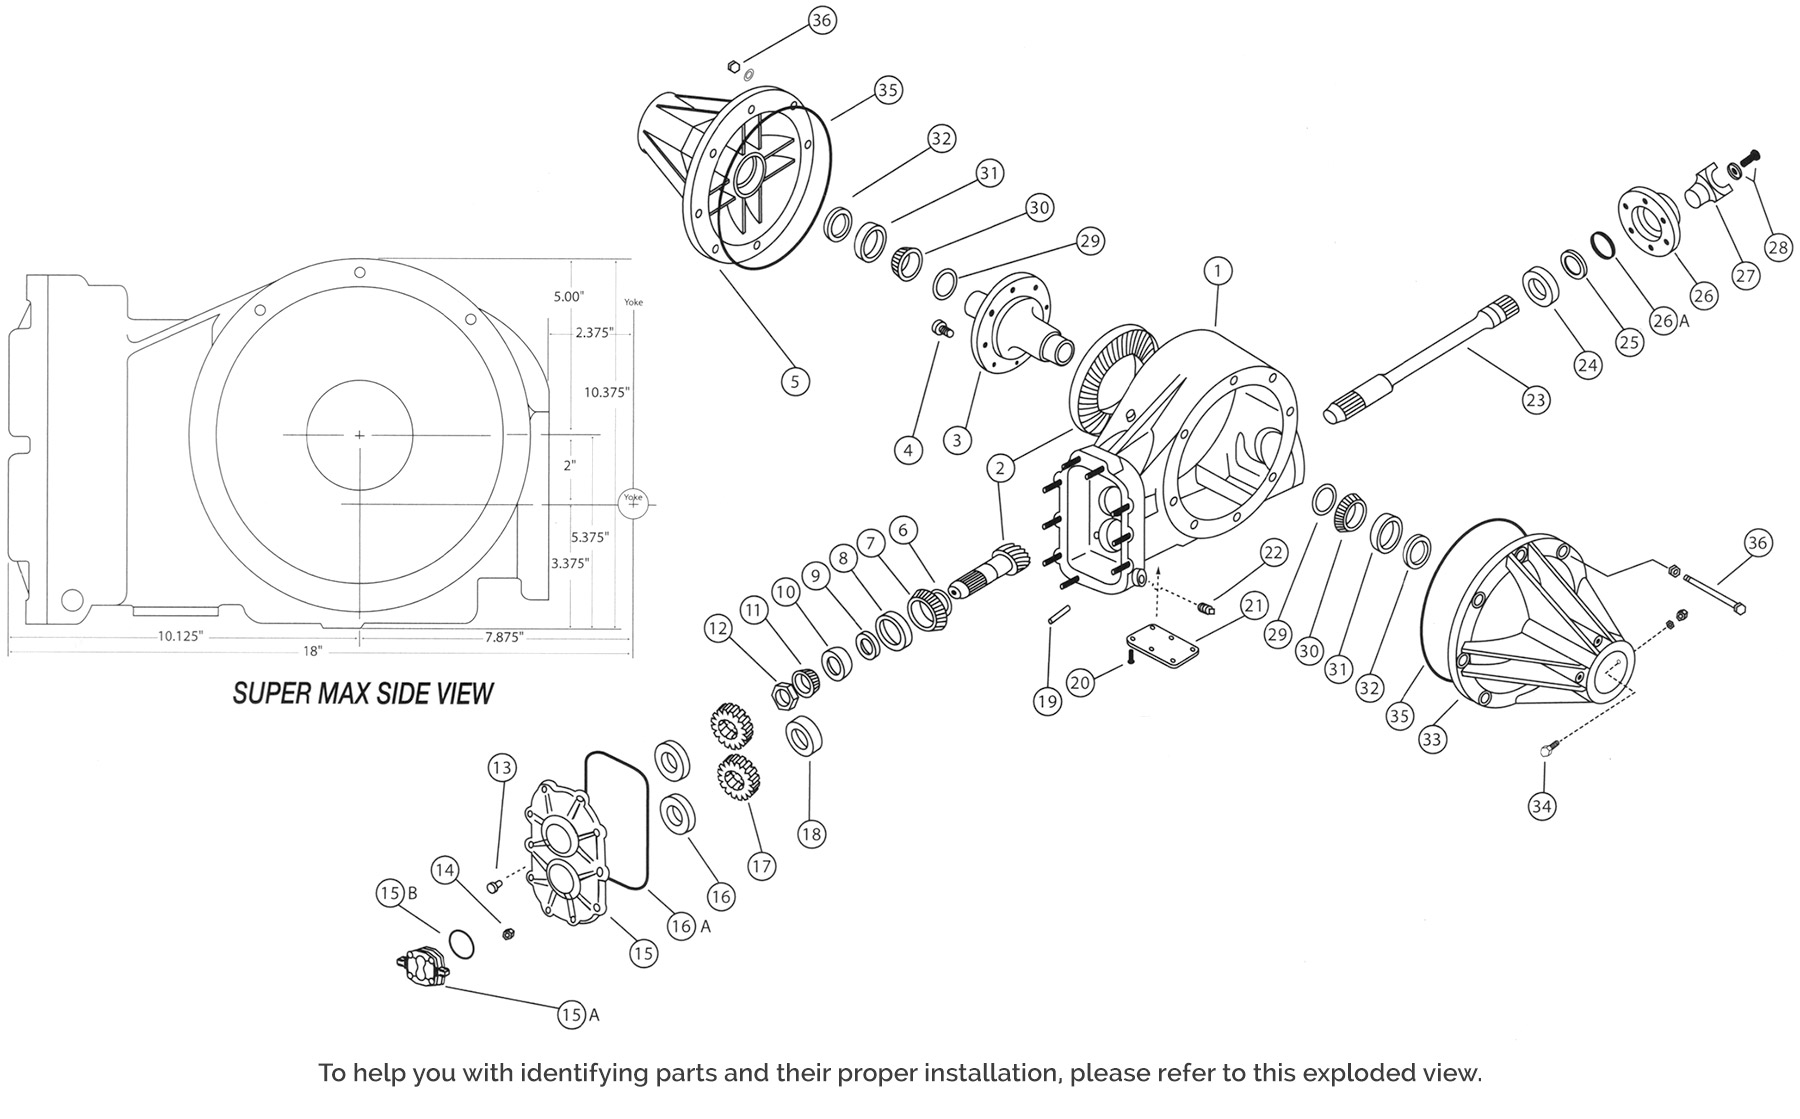 Supermax Replacement Parts